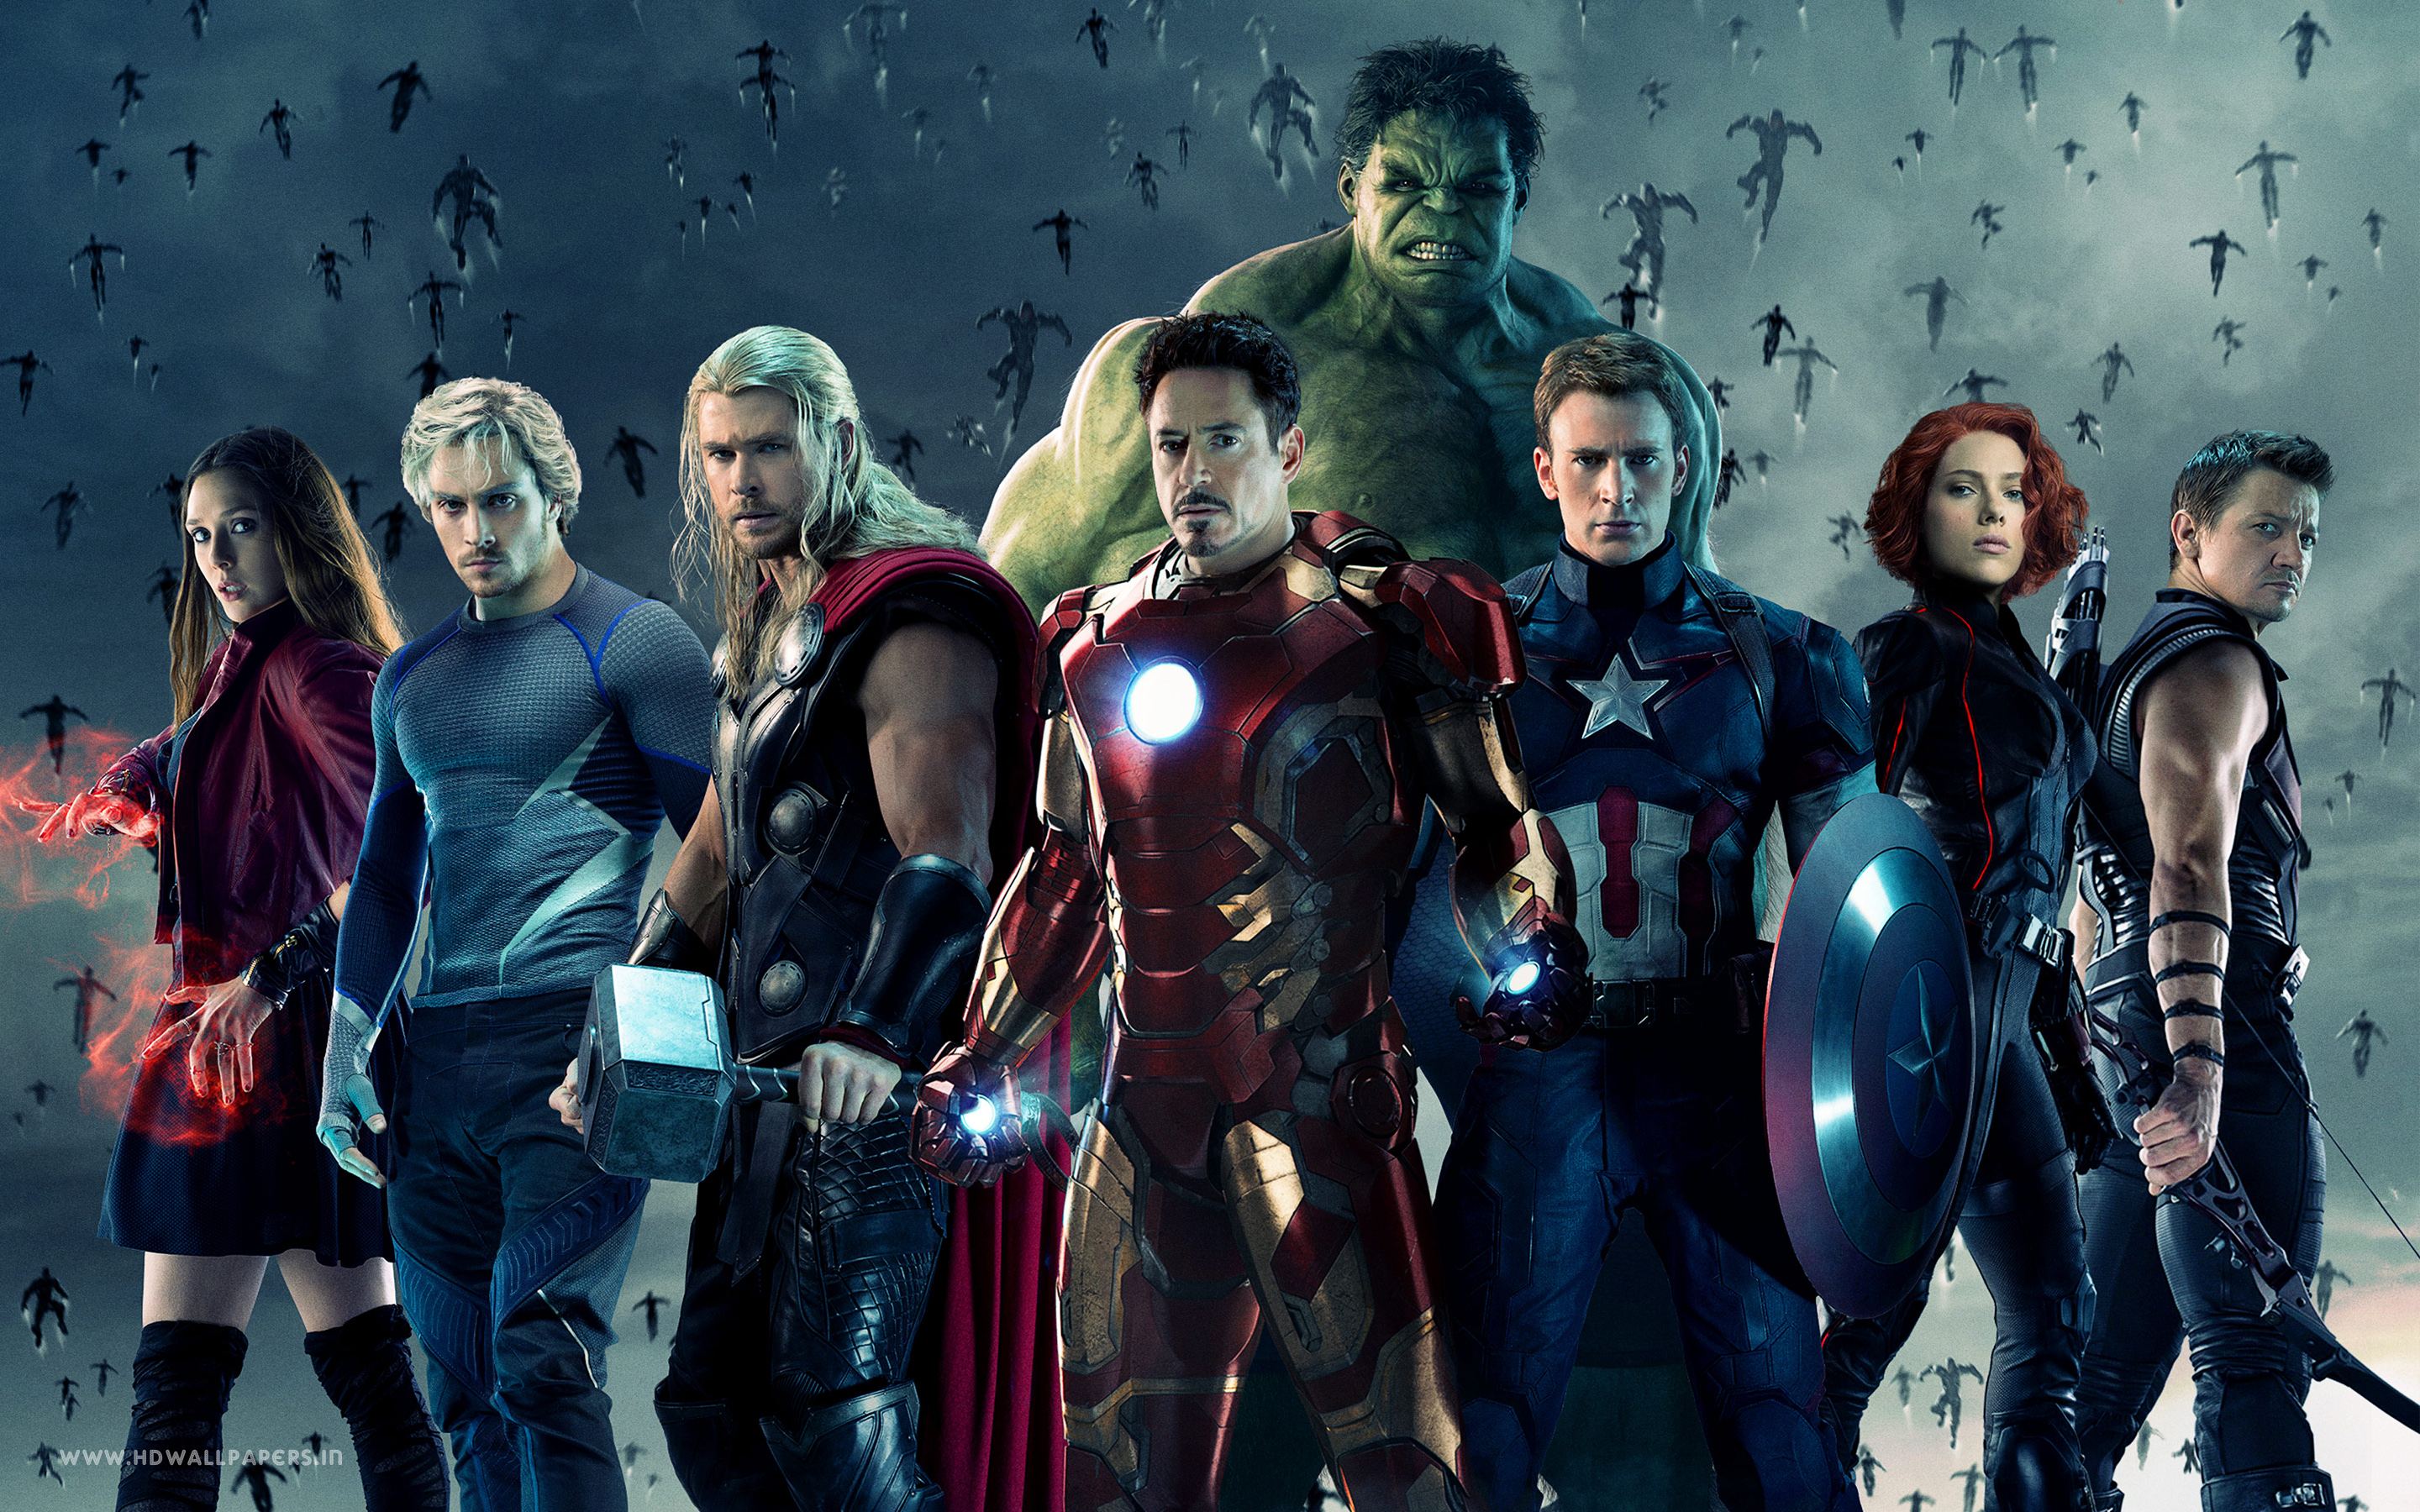 Avengers Age of Ultron 2015 Movie Wallpapers HD Wallpapers 2880x1800